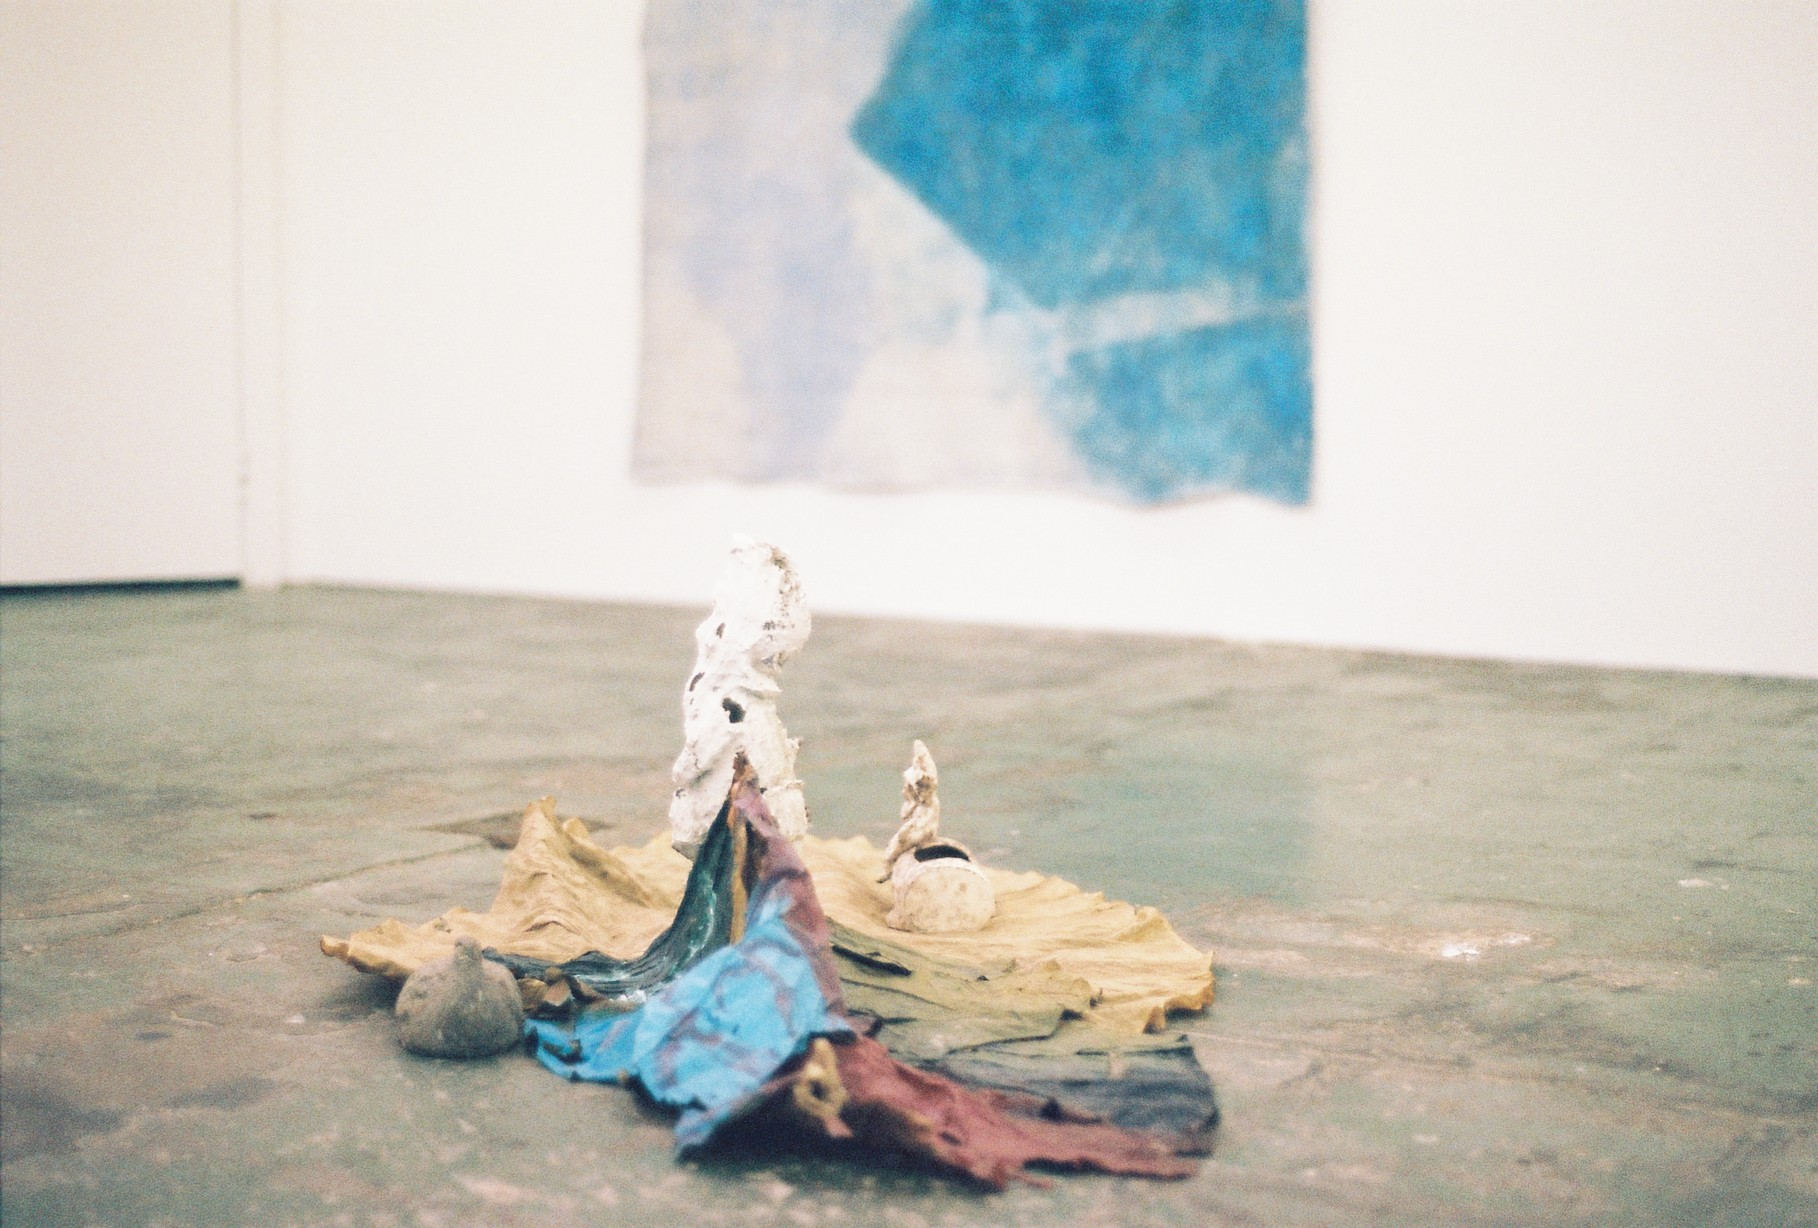 Foreground: Alice McIntosh,  Leaves ft. Figures , 2018 found figurines, leaves, oil paint Background: Jahnne Pasco–White,  The bluest feet around , 2017 ash, limestone, PVA, pigment, spray adhesive, acrylic on cotton courtesy Daine Singer, Melbourne